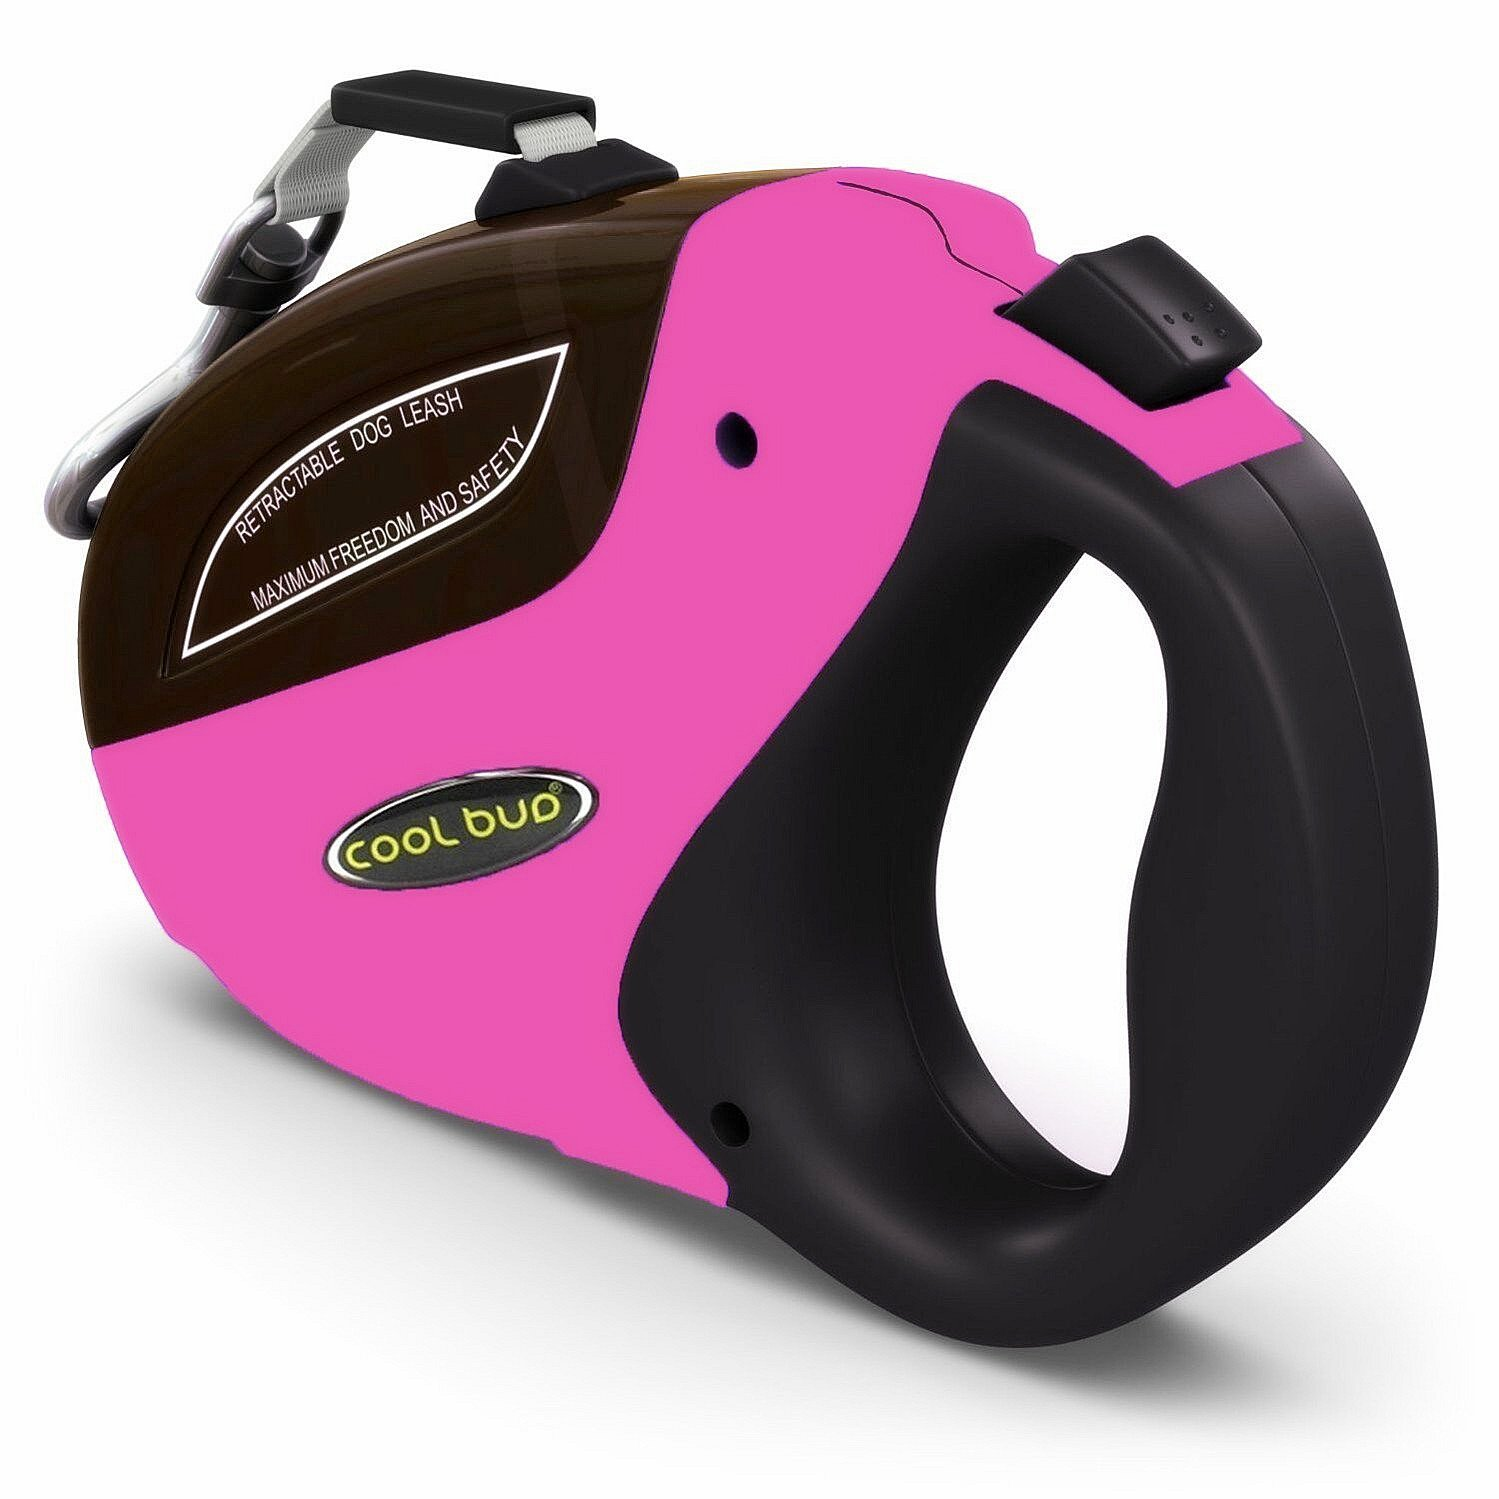 Security Pro Retractable Dog Leash Pink 16ft Top Heavy Duty Leash For Large Dogs Up To 110lbs by Fragralley